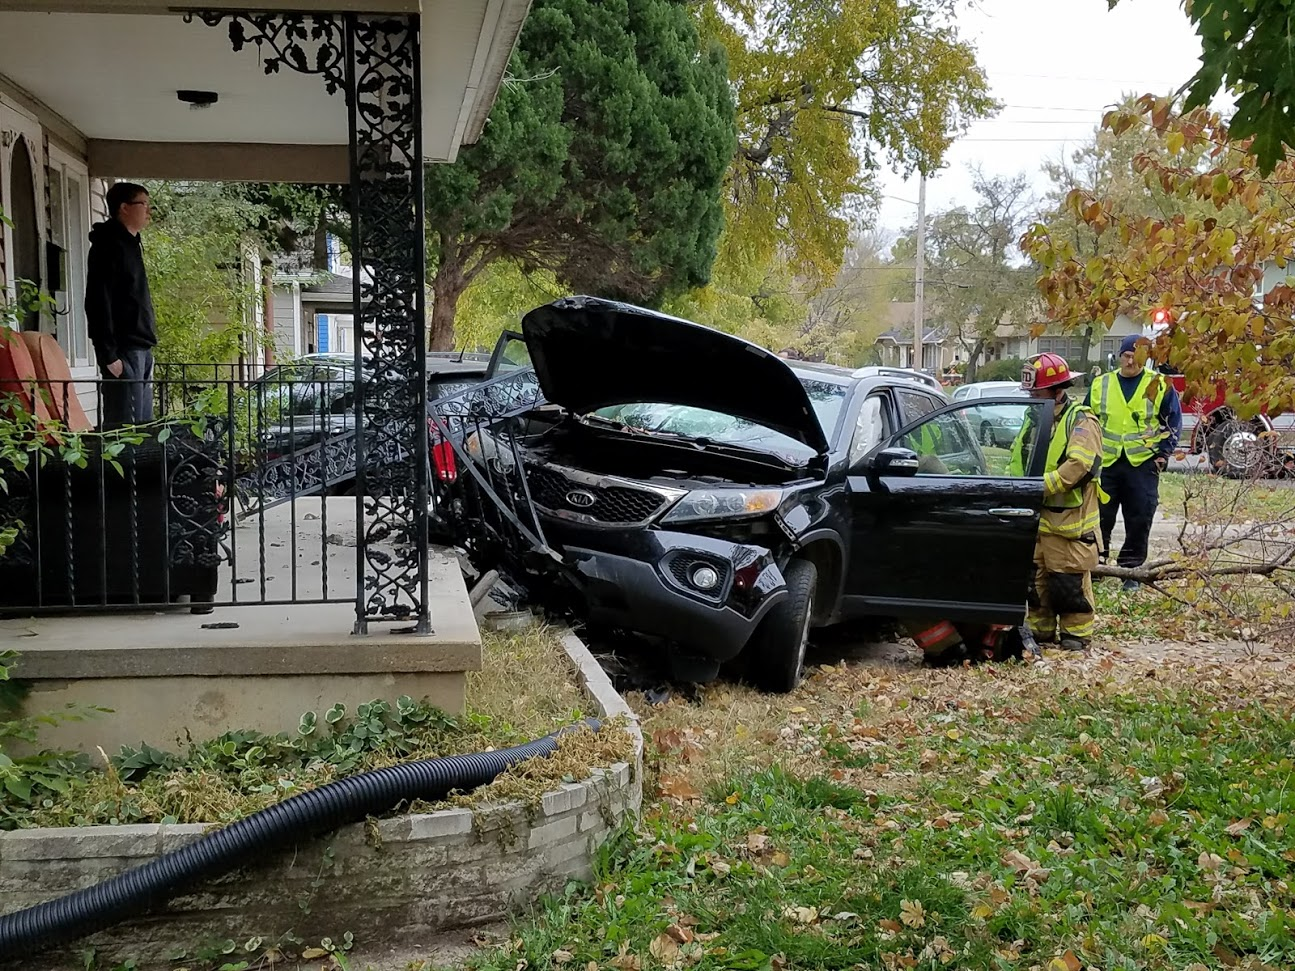 Update: Driver Flees After Crashing Into House